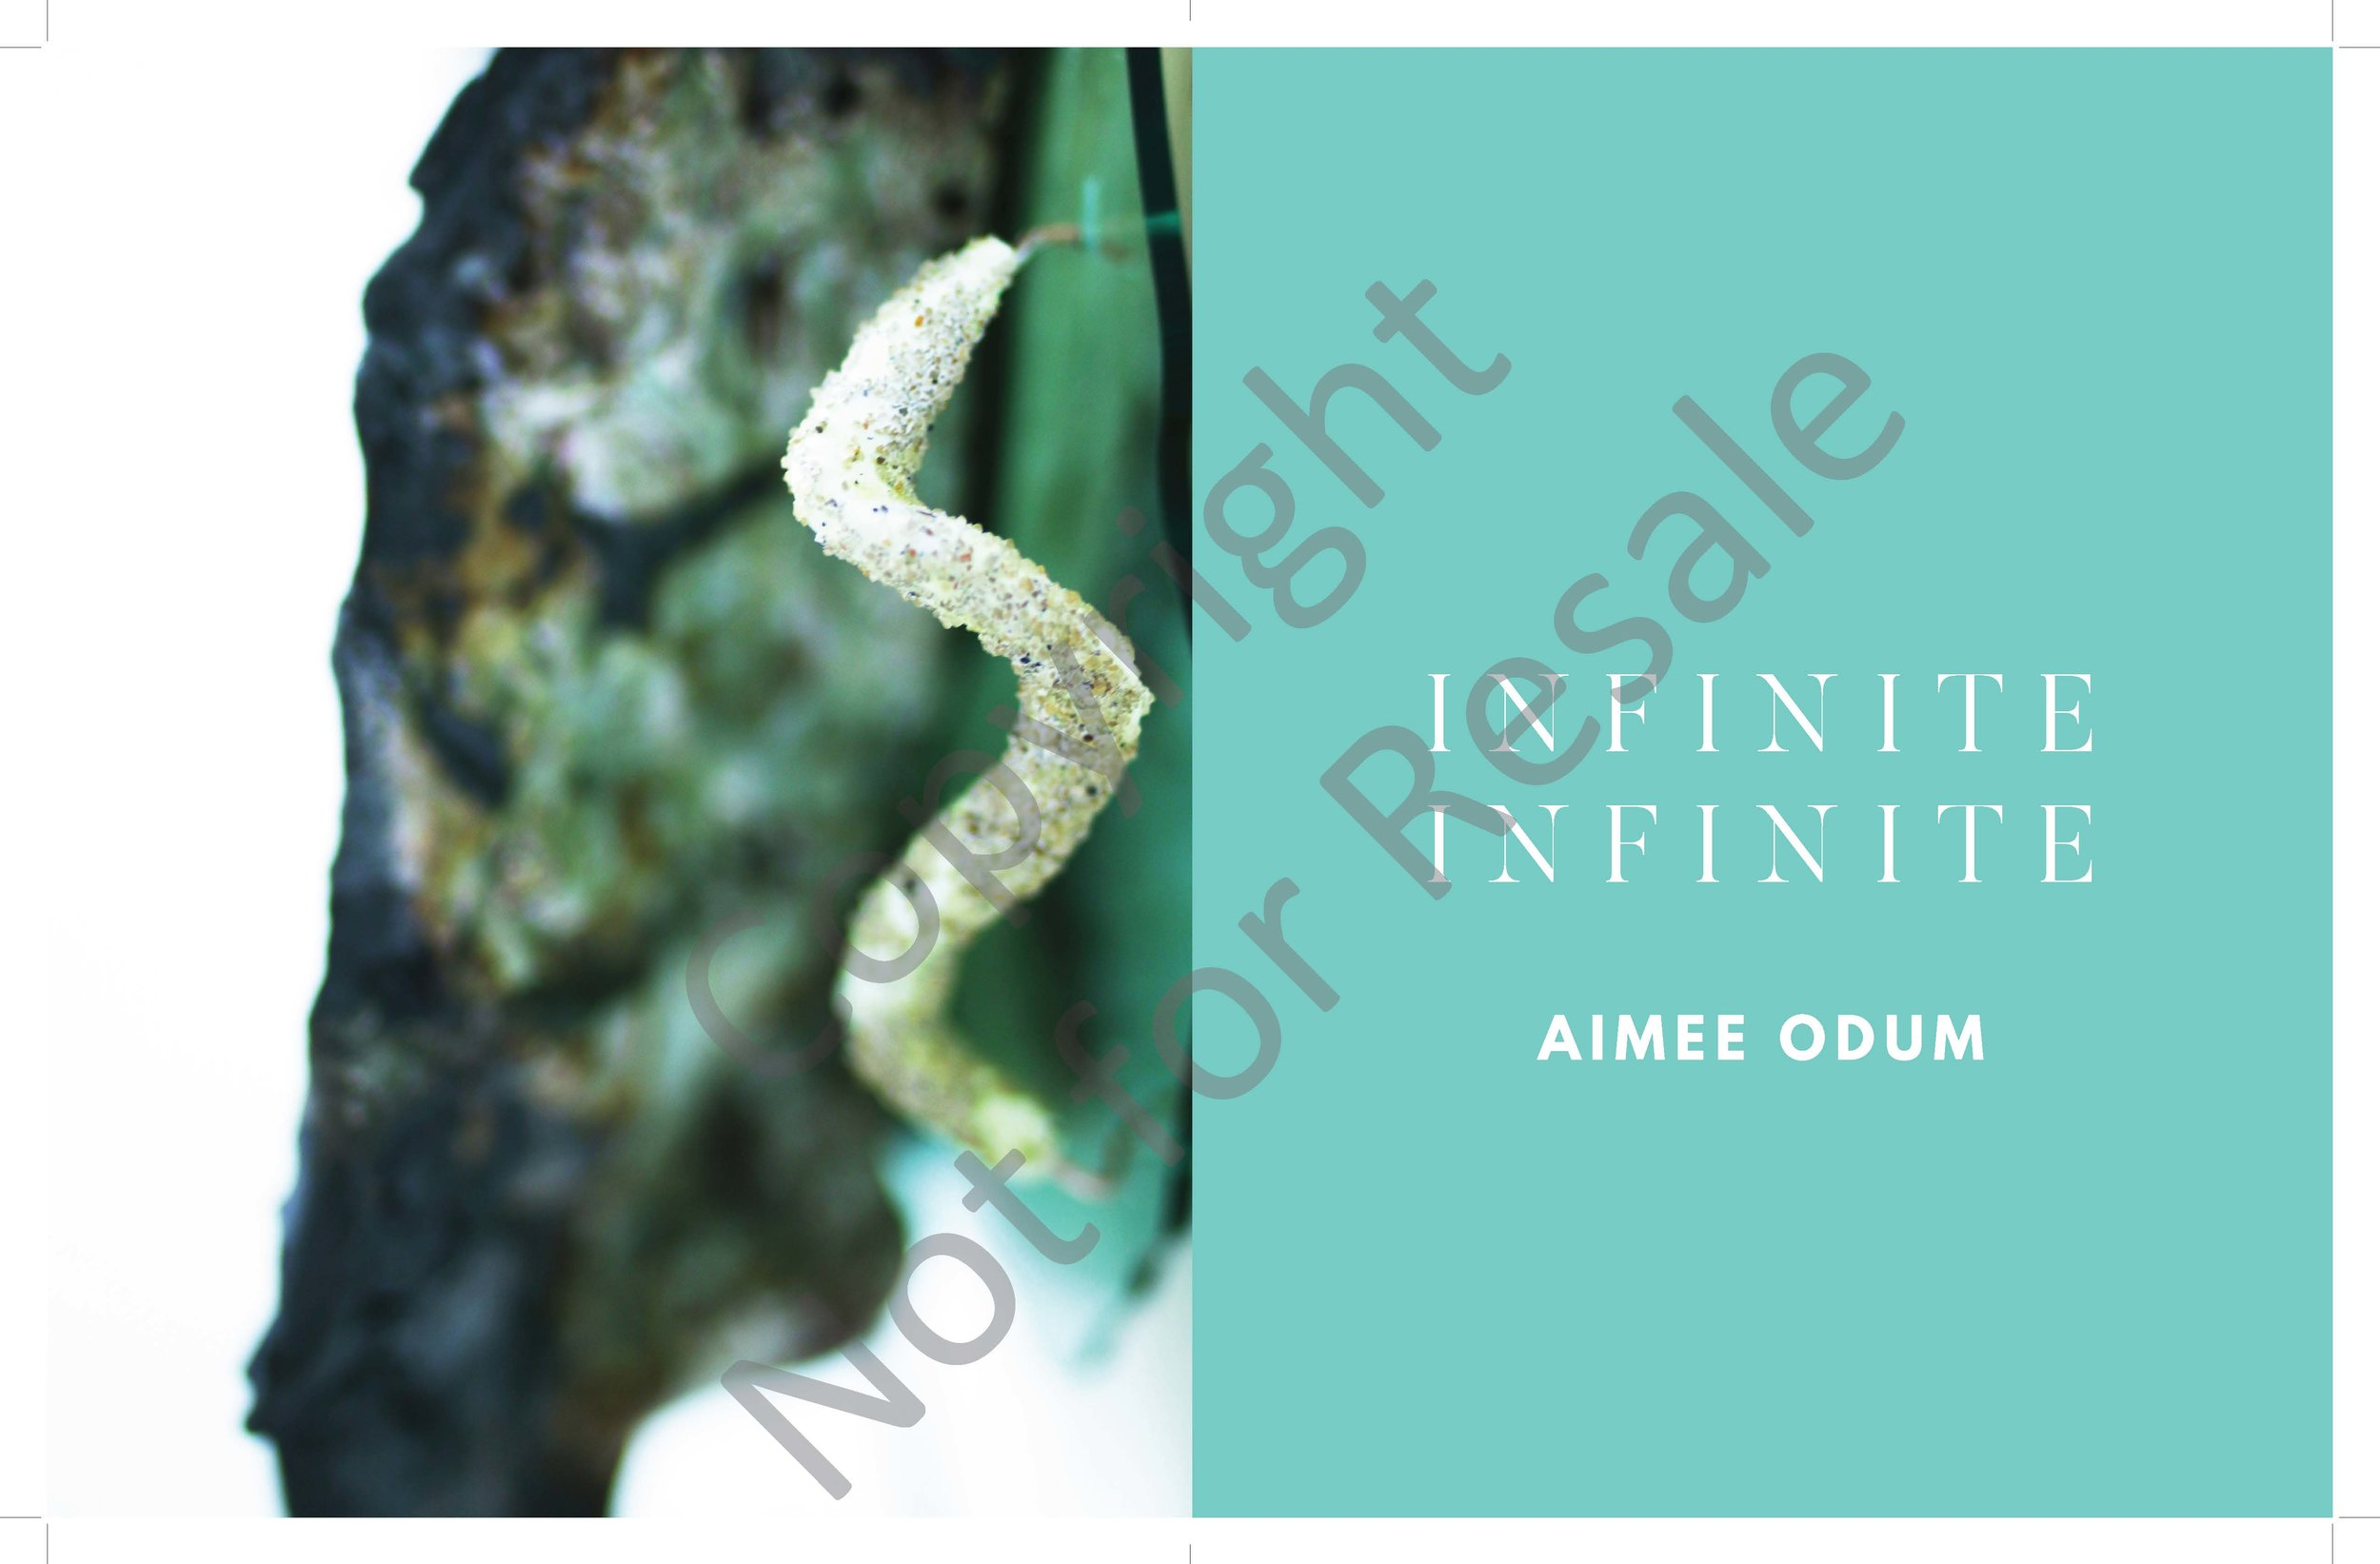 Odum_Aimee_A+L_Catalogue_Watermark_Page_02.jpg